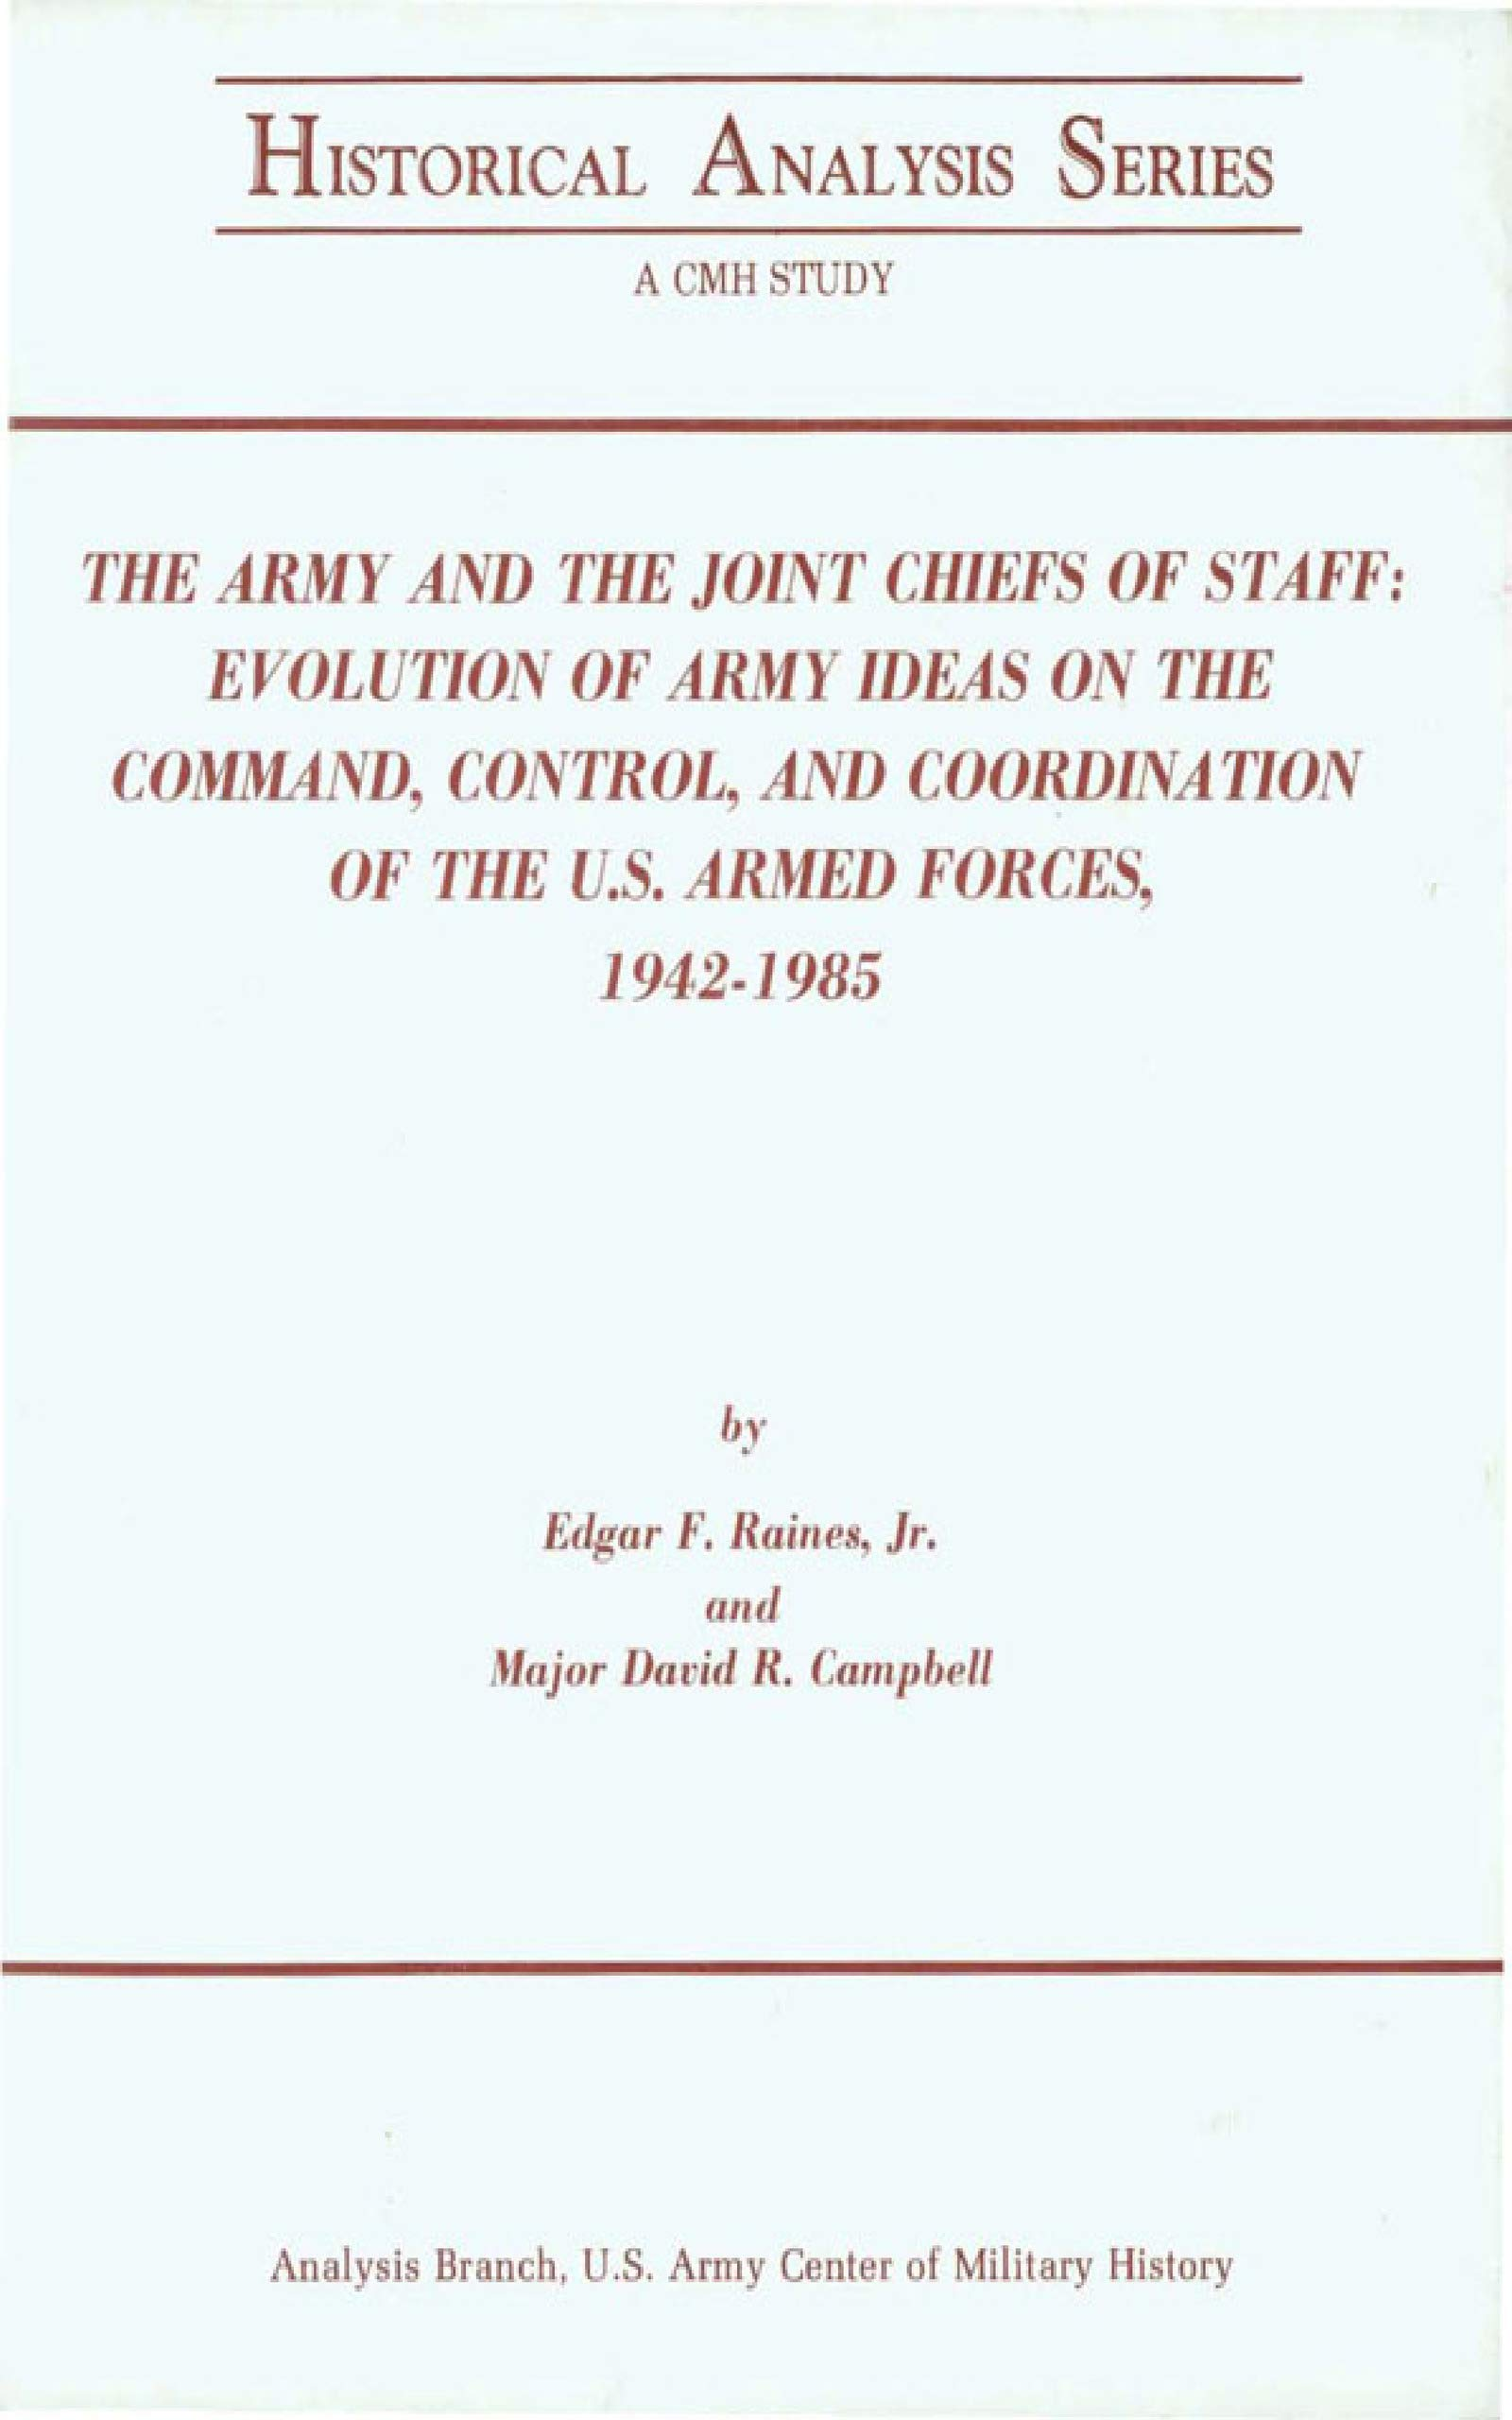 The Army And The Joint Chiefs Of Staff: Evolution Of Army Ideas On The Command, Control, And Coordination Of The U.s. Armed Forces, 1942-1985